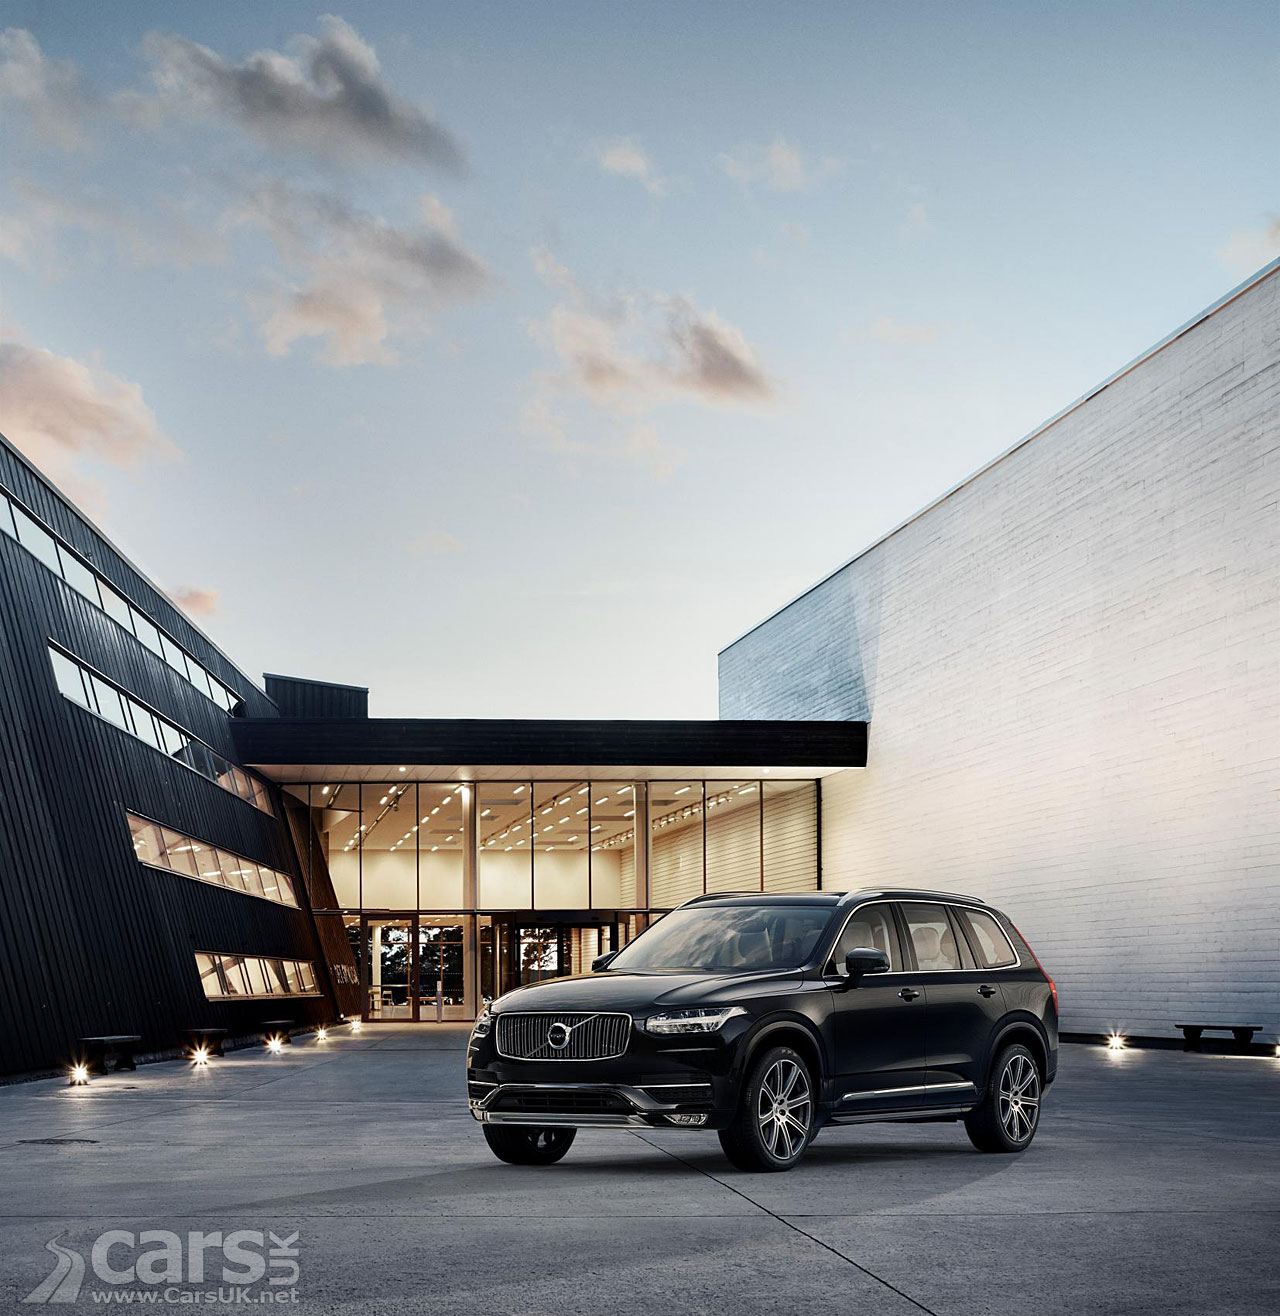 2020 Volvo Xc90 Hybrid Specifications: 2015 Volvo XC90 First Edition Pictures